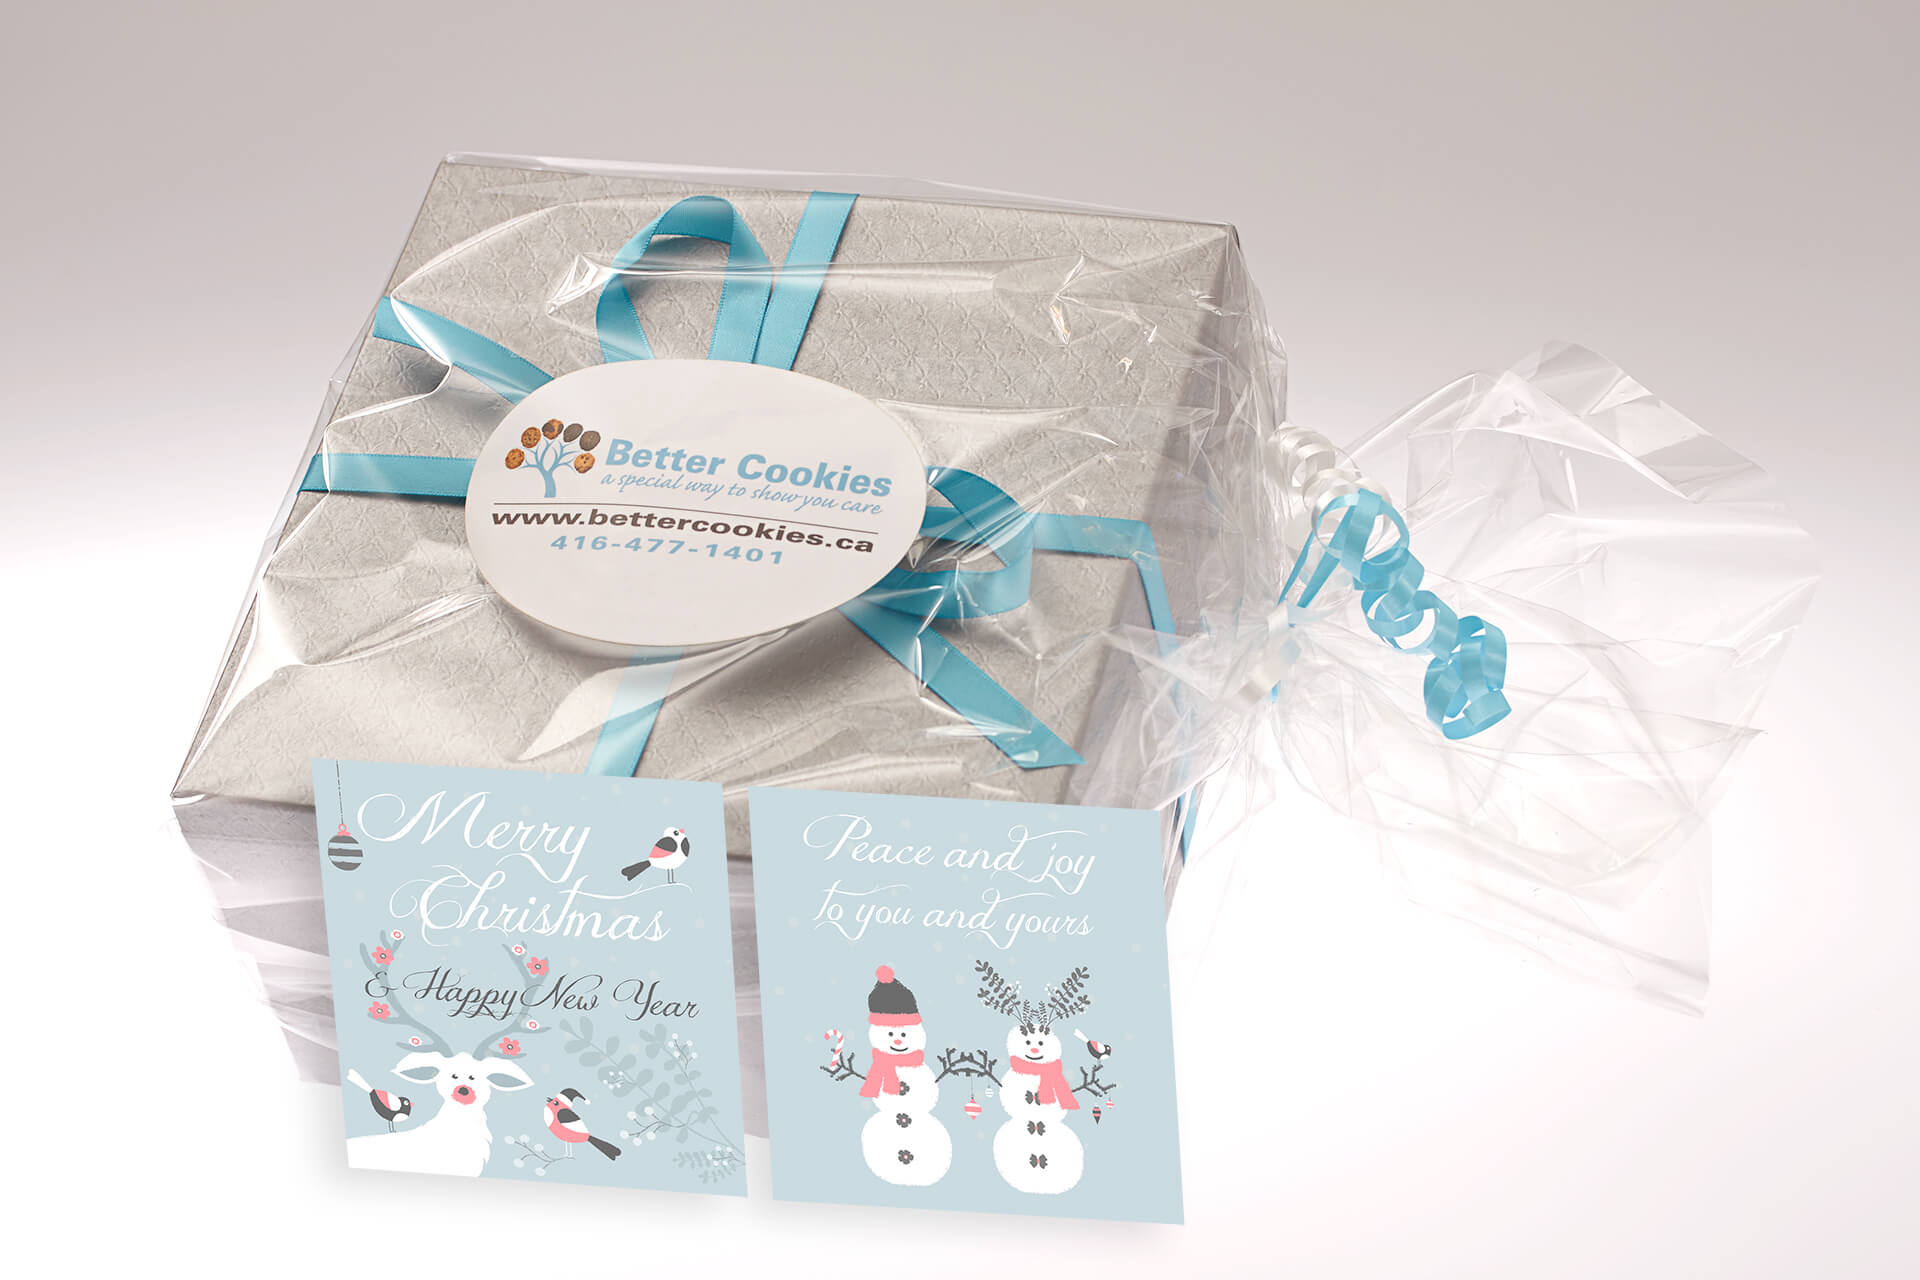 Christmas Cookies Gift Boxes in Canada